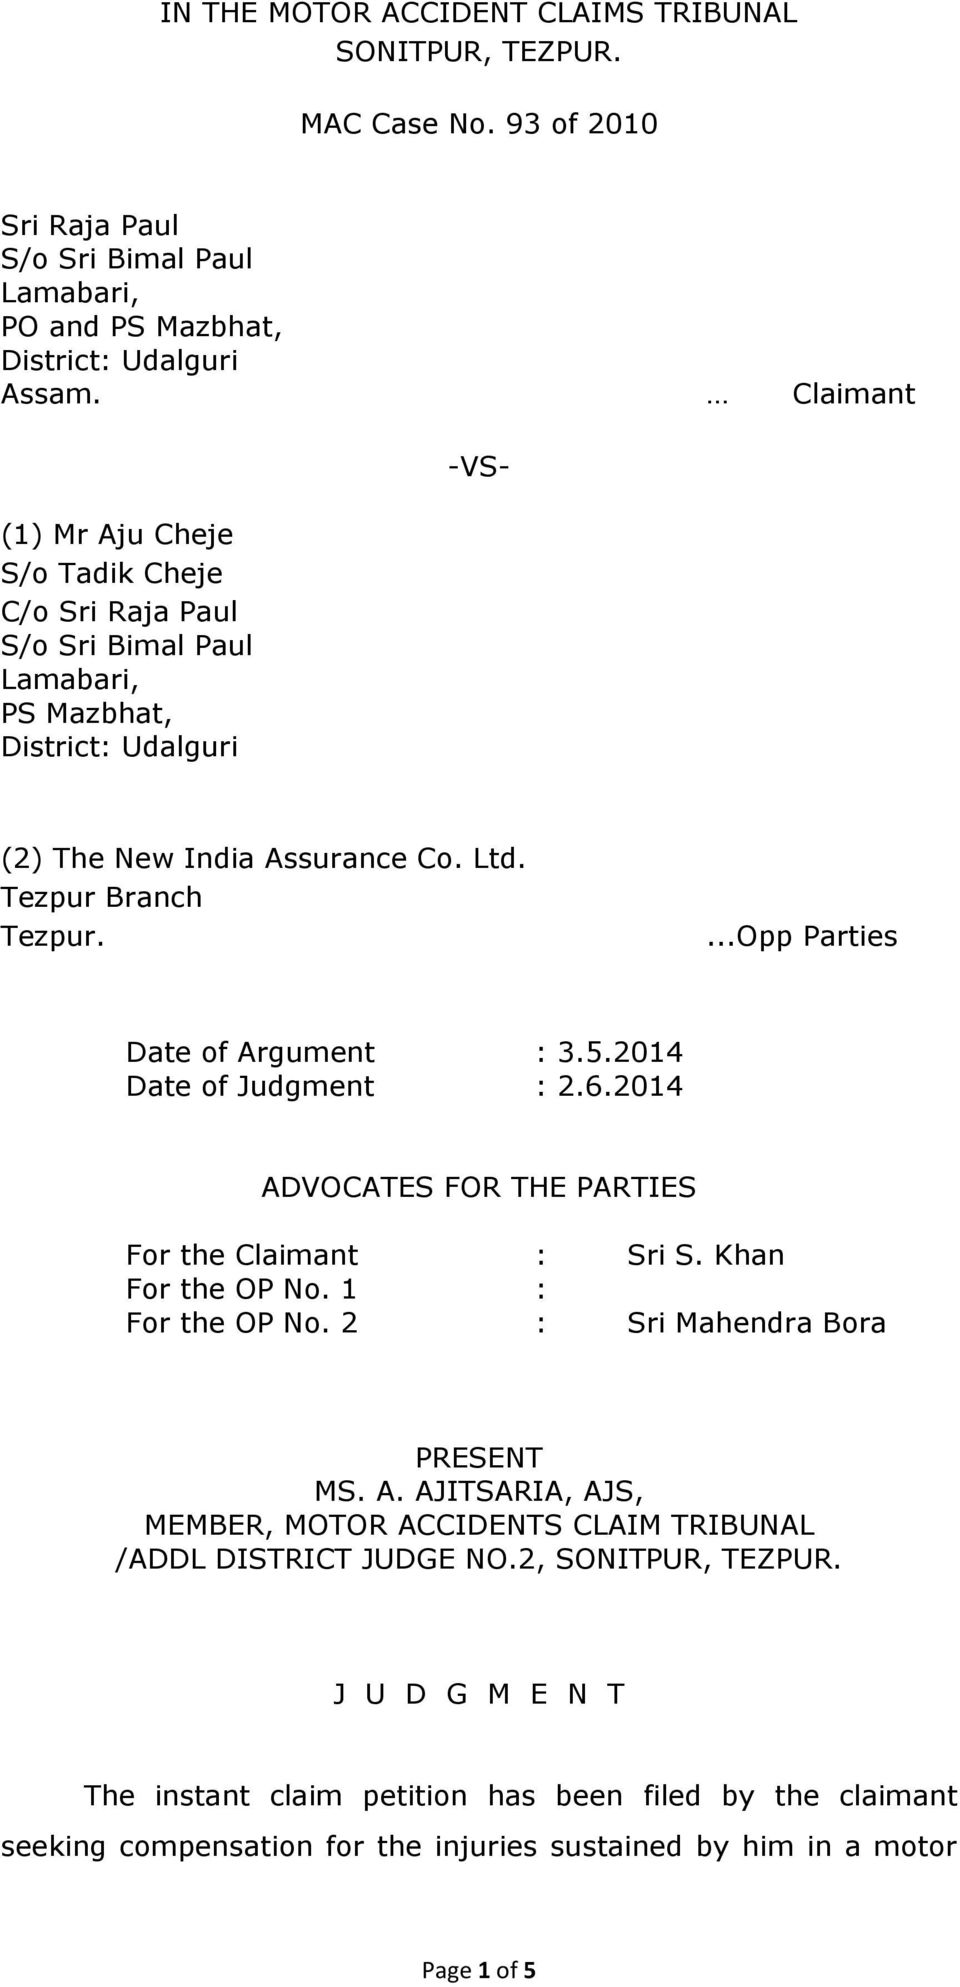 ...Opp Parties Date of Argument : 3.5.2014 Date of Judgment : 2.6.2014 ADVOCATES FOR THE PARTIES For the Claimant : Sri S. Khan For the OP No. 1 : For the OP No. 2 : Sri Mahendra Bora PRESENT MS. A. AJITSARIA, AJS, MEMBER, MOTOR ACCIDENTS CLAIM TRIBUNAL /ADDL DISTRICT JUDGE NO.